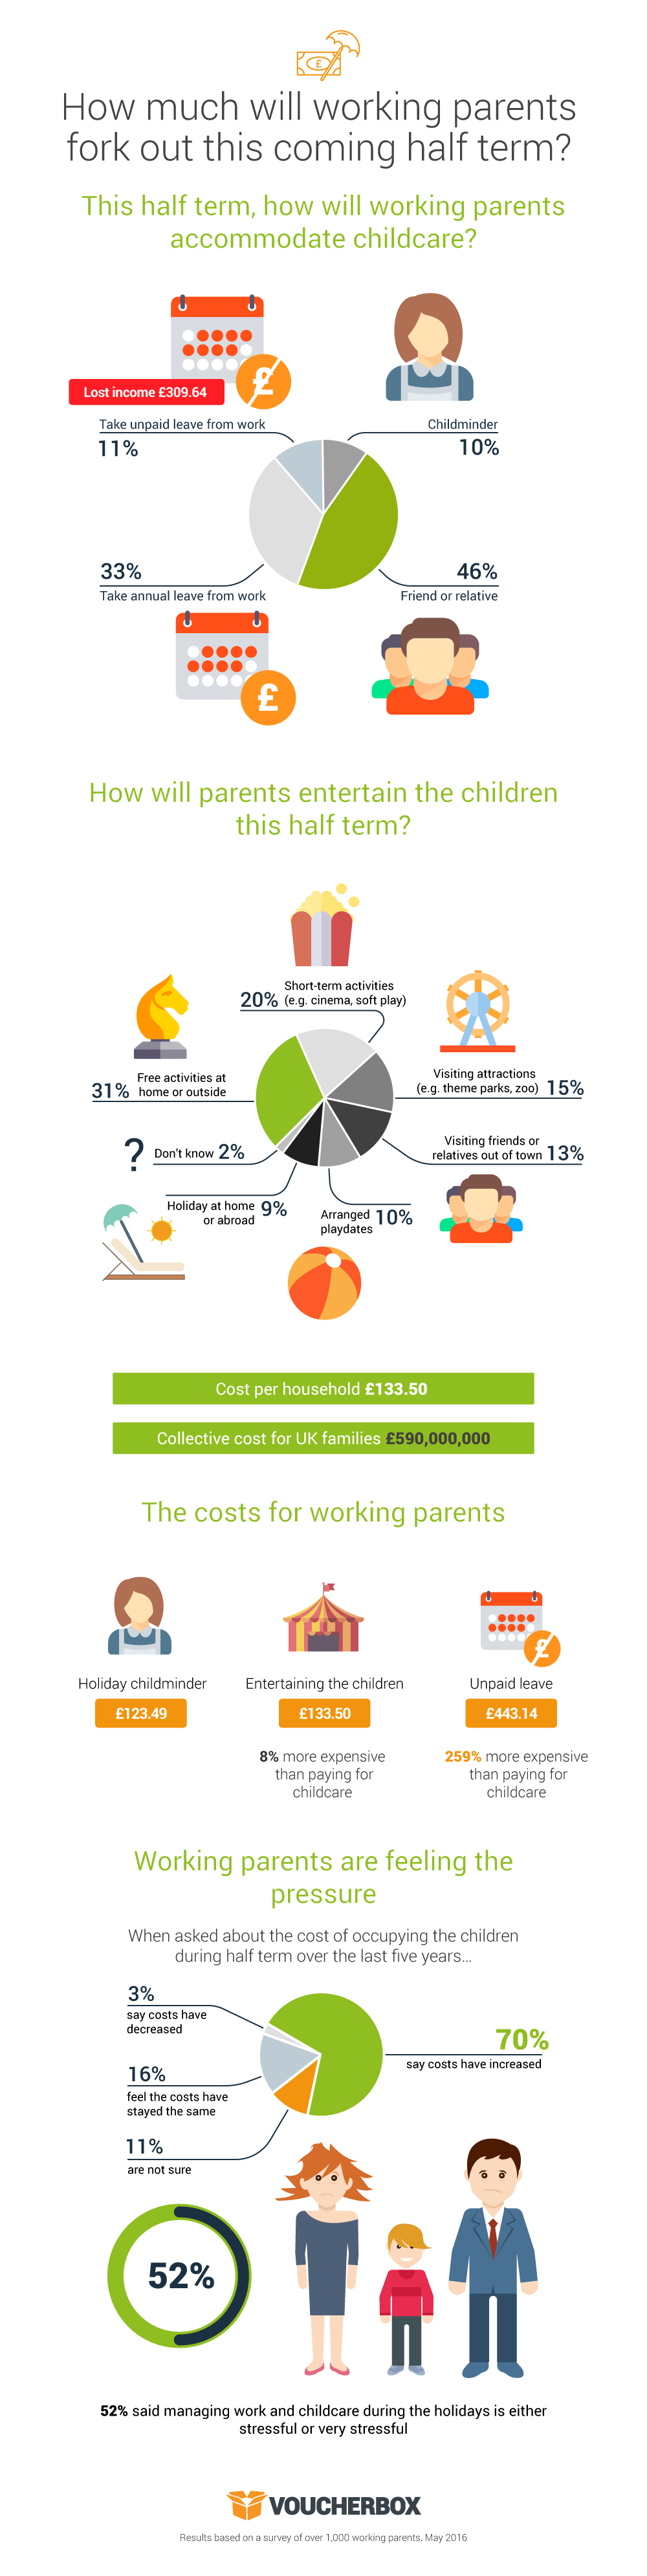 Half term set to cost working parents over £400 Infographic